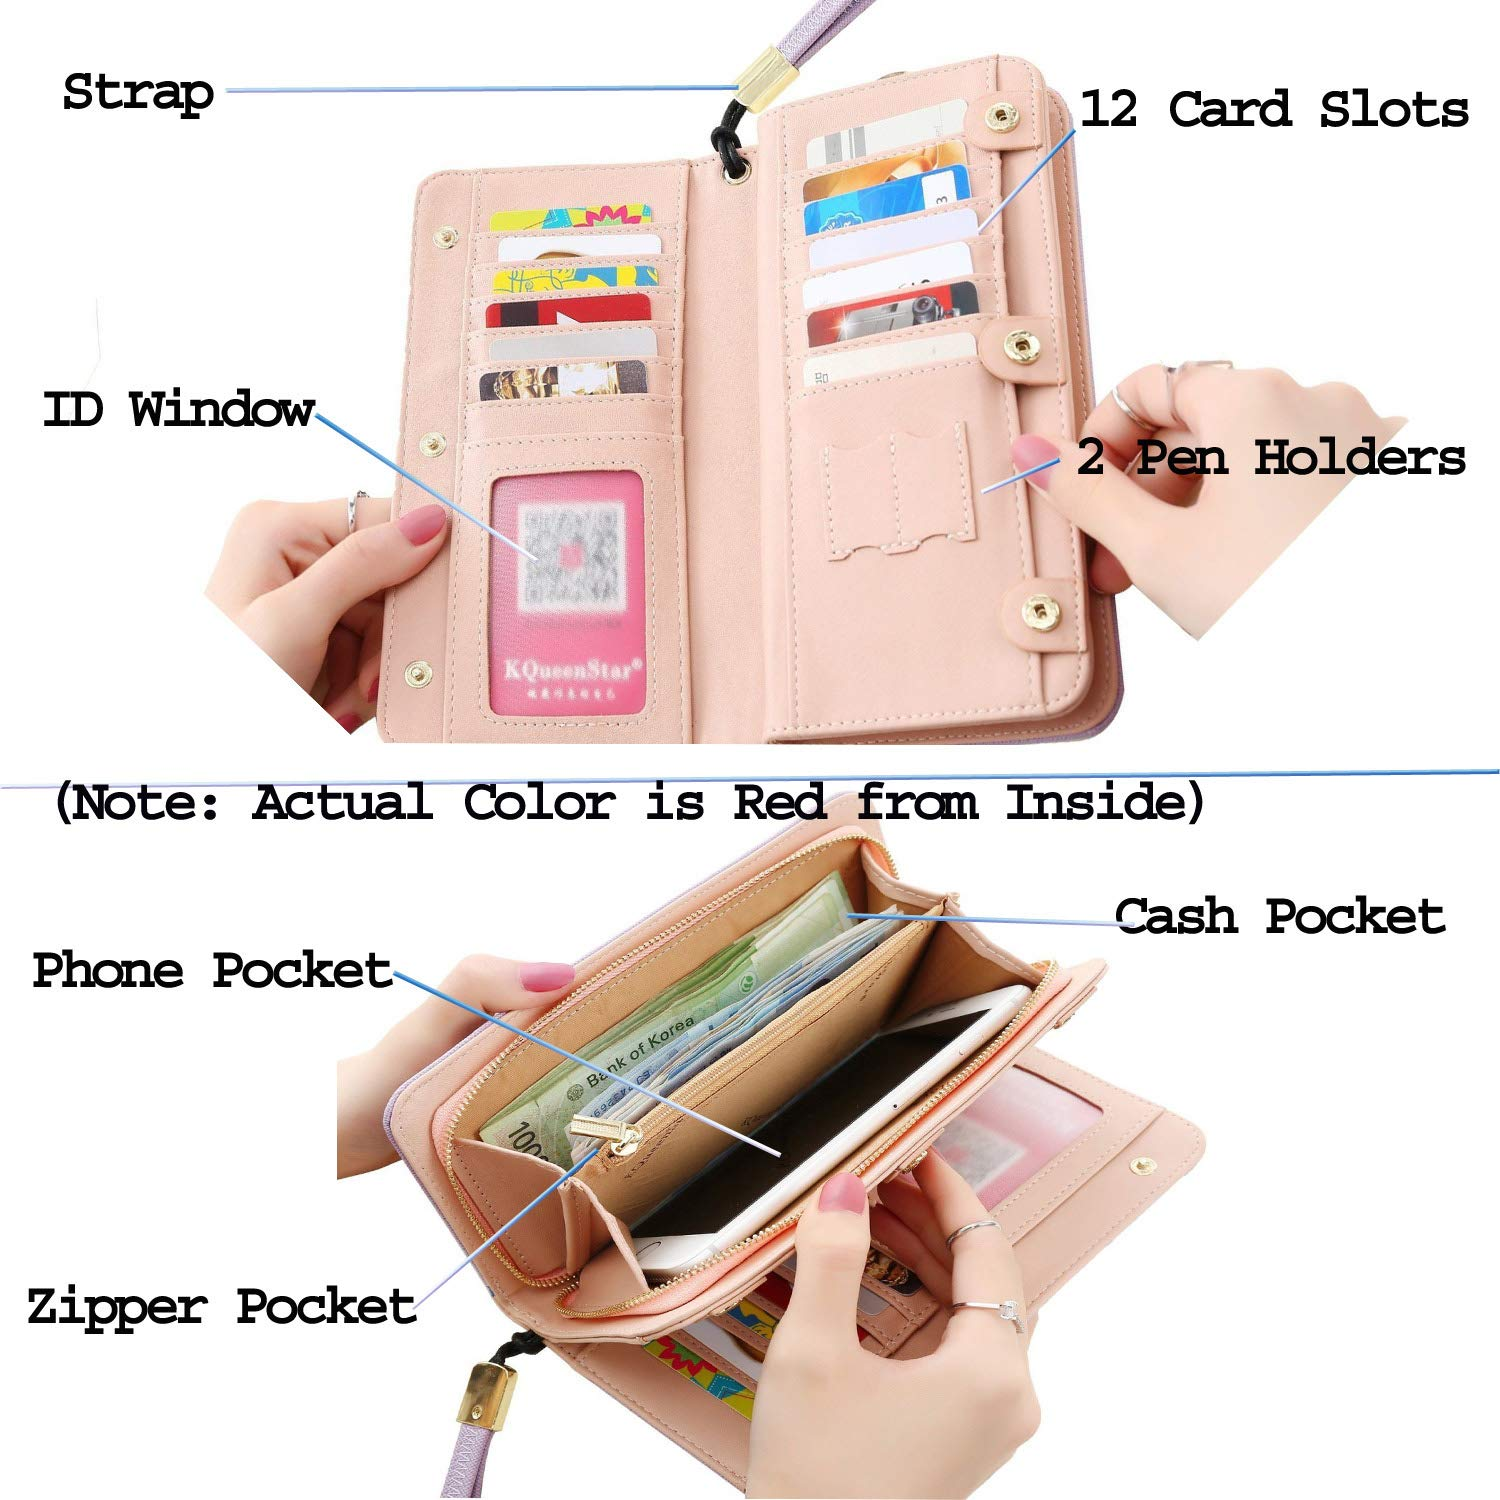 65921fb91dbf Amaze Fashion Wallets for Women RFID Blocking Clutch Zipper Colorful  Leather Long Purse Wrist Strap with Phone Pocket